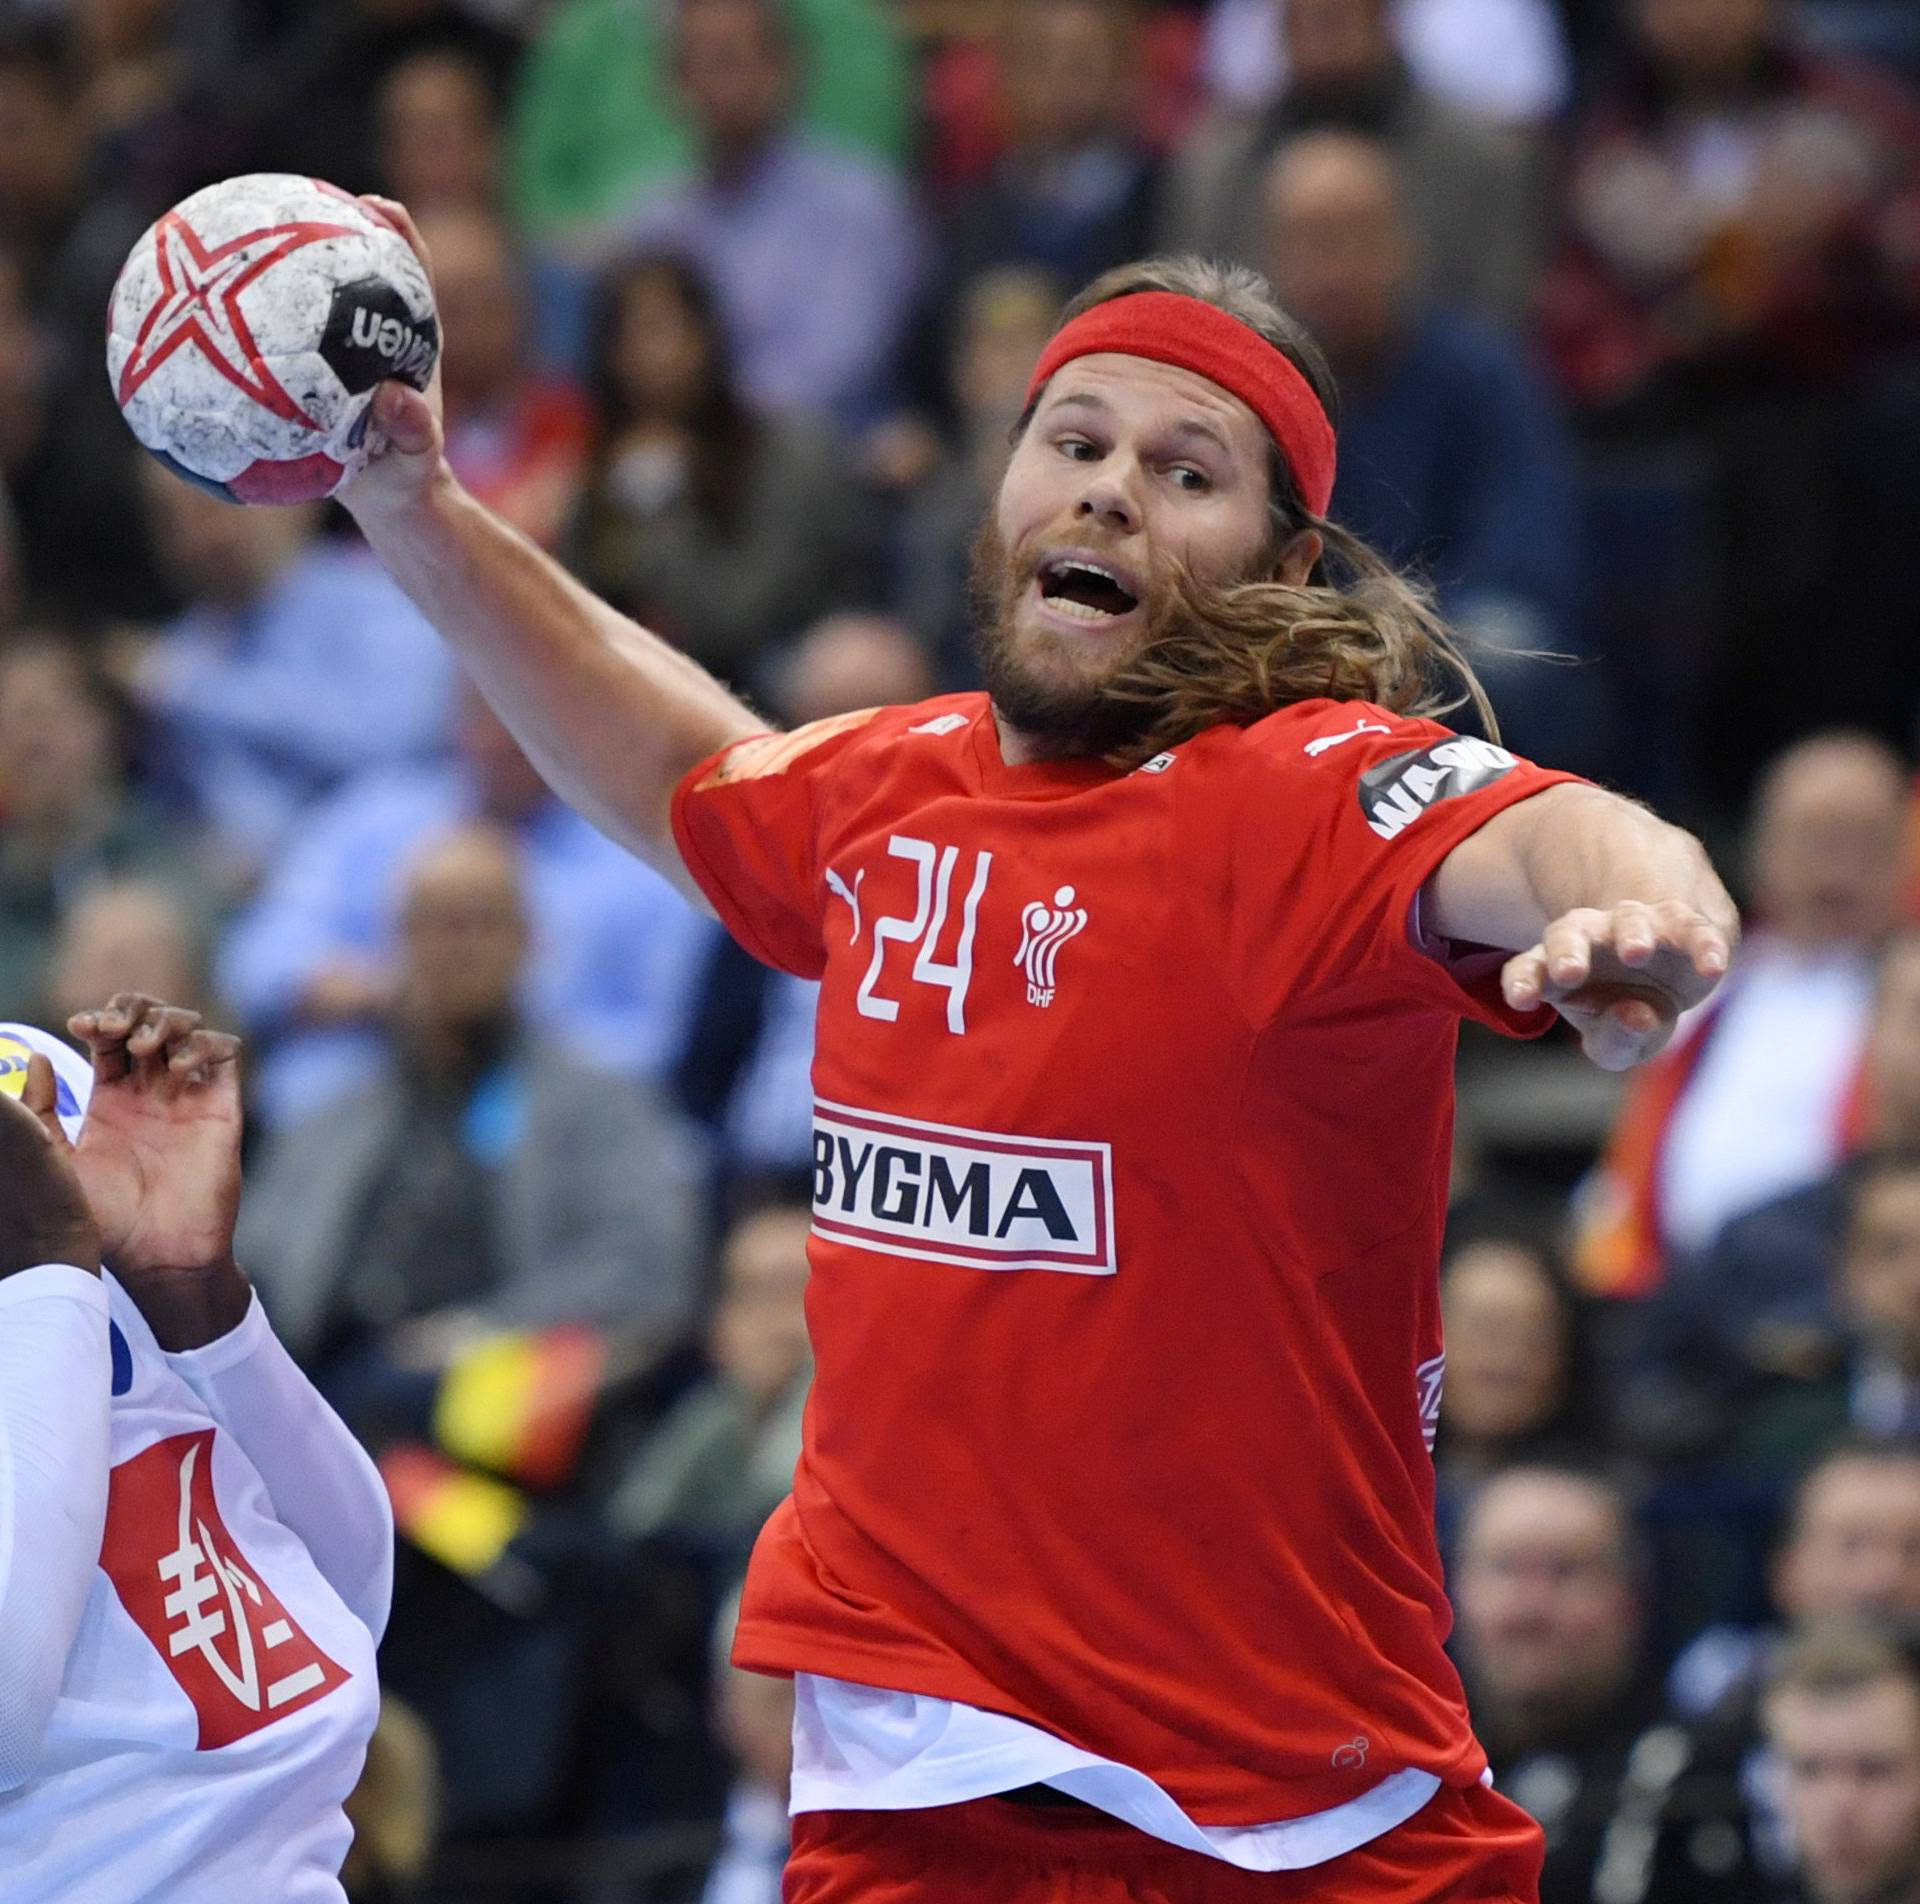 IHF Handball World Championship - Germany & Denmark 2019 - Semi Final - Denmark v France